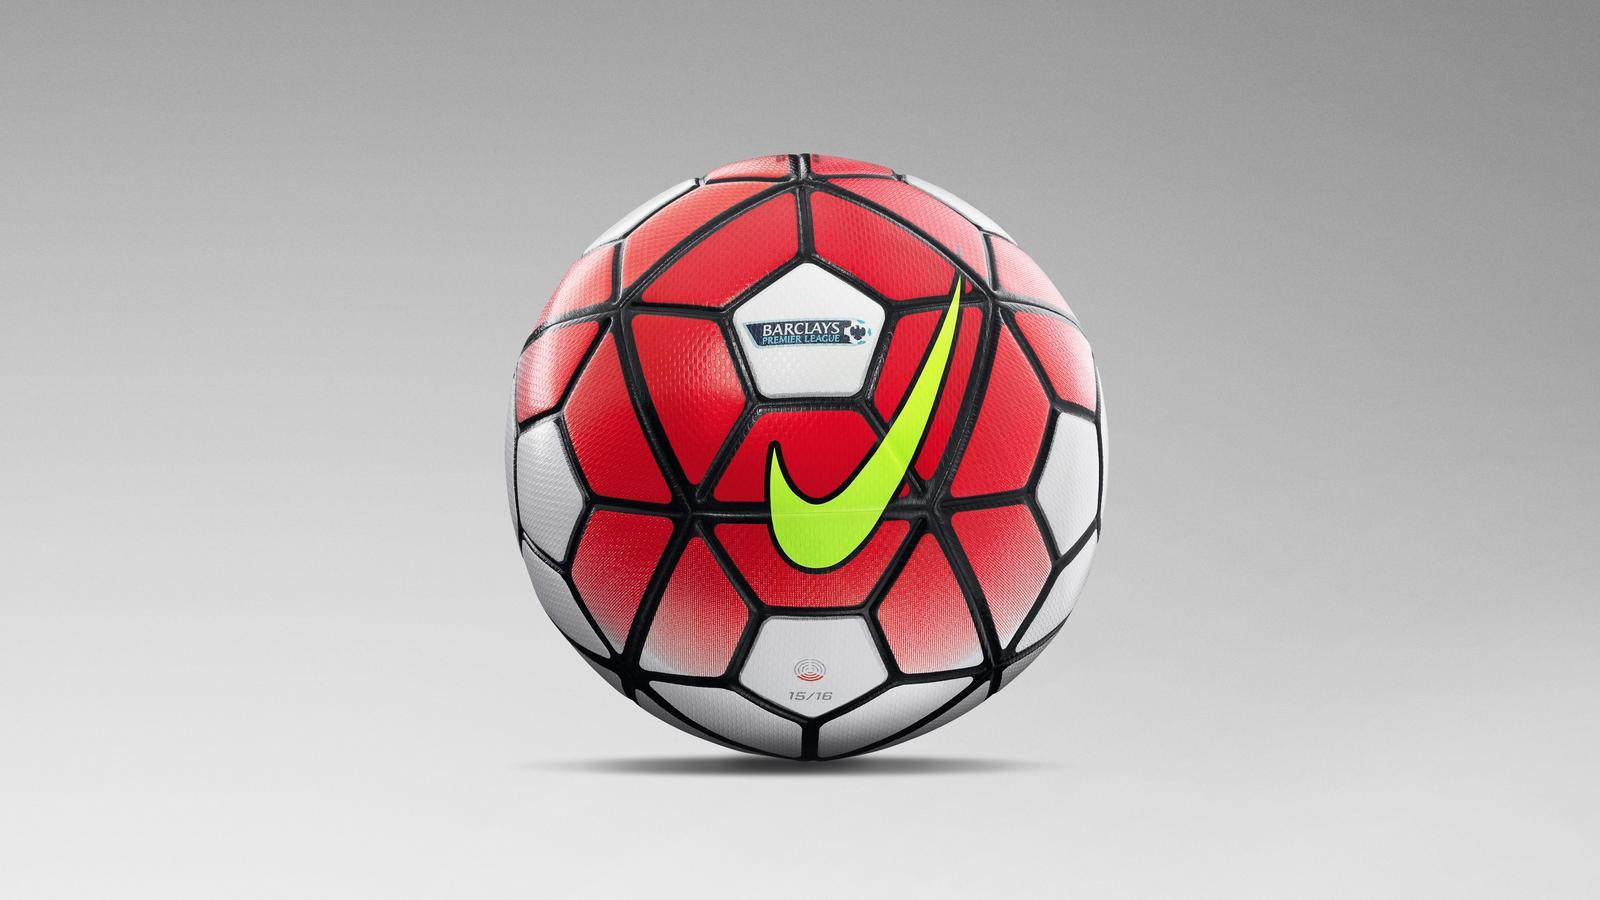 promo code e6c7a 91004 Nike Ordem 3 Football Brings Unrivalled Flight to Europe s Top .